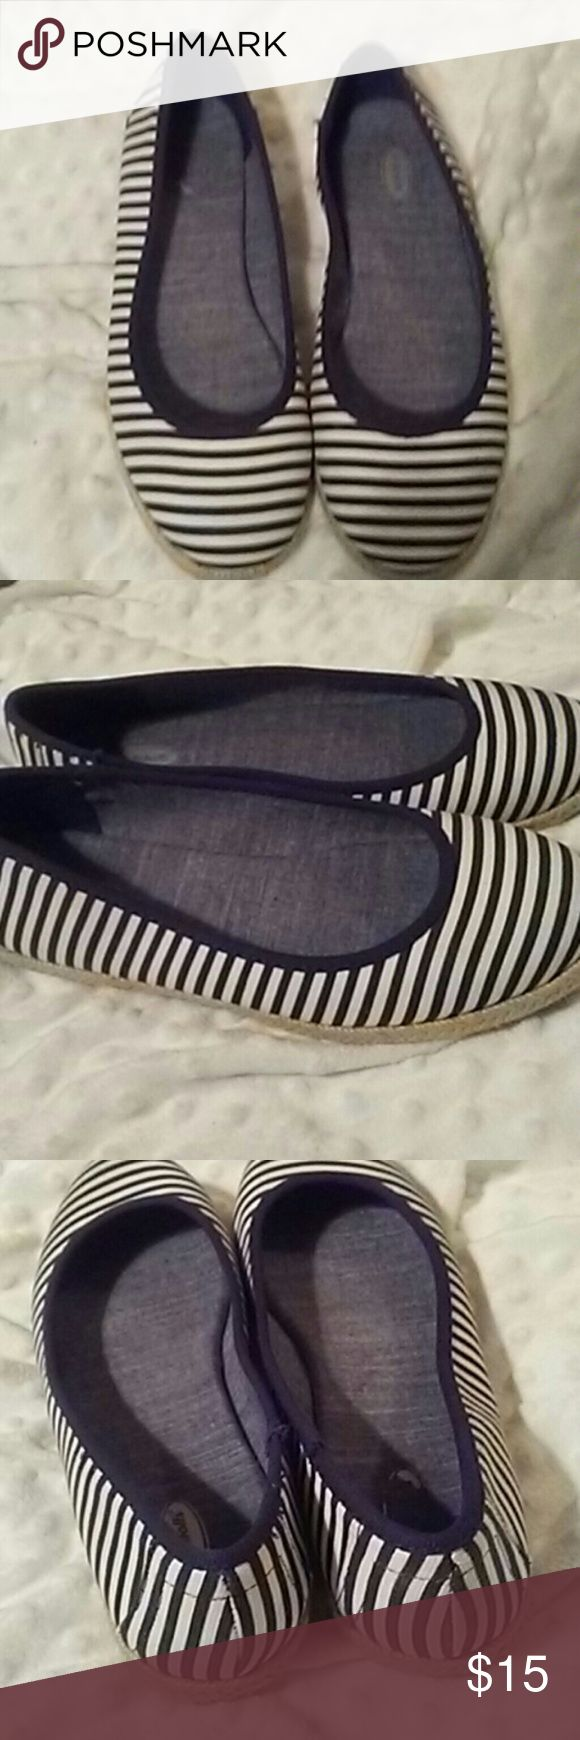 Dr. School's Blue and White Stripe Flat Really cute blue and white flat sneakers by Dr. Scholl's. Super comfortable padded inside. Only worn once. Style is Palma. Dr. Scholl's Shoes Flats & Loafers